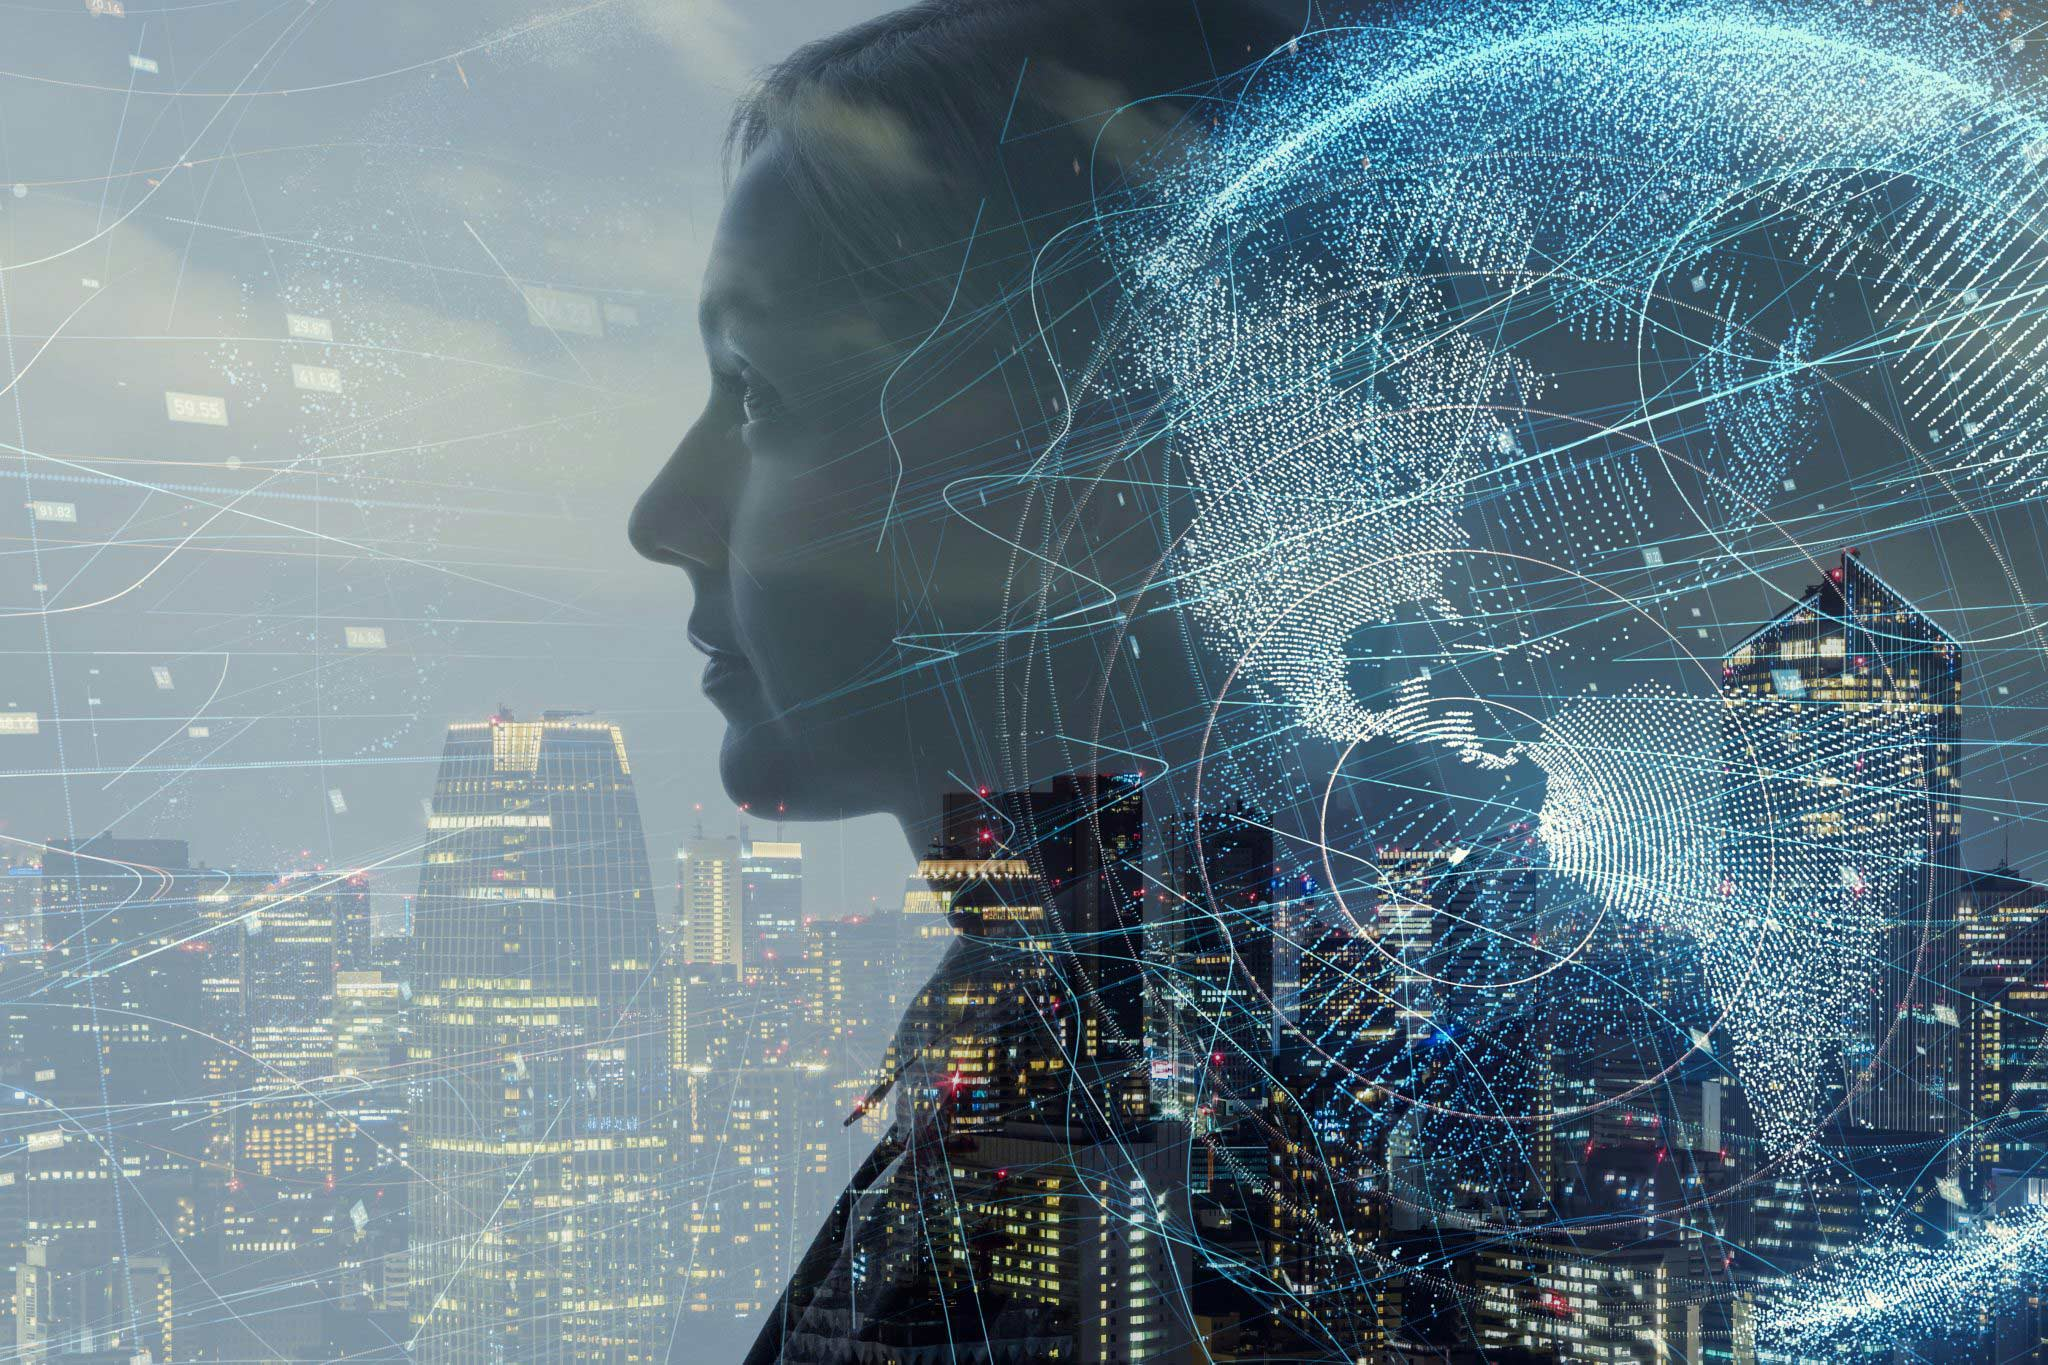 Top Publicly Traded Companies at the Forefront of AI Innovation